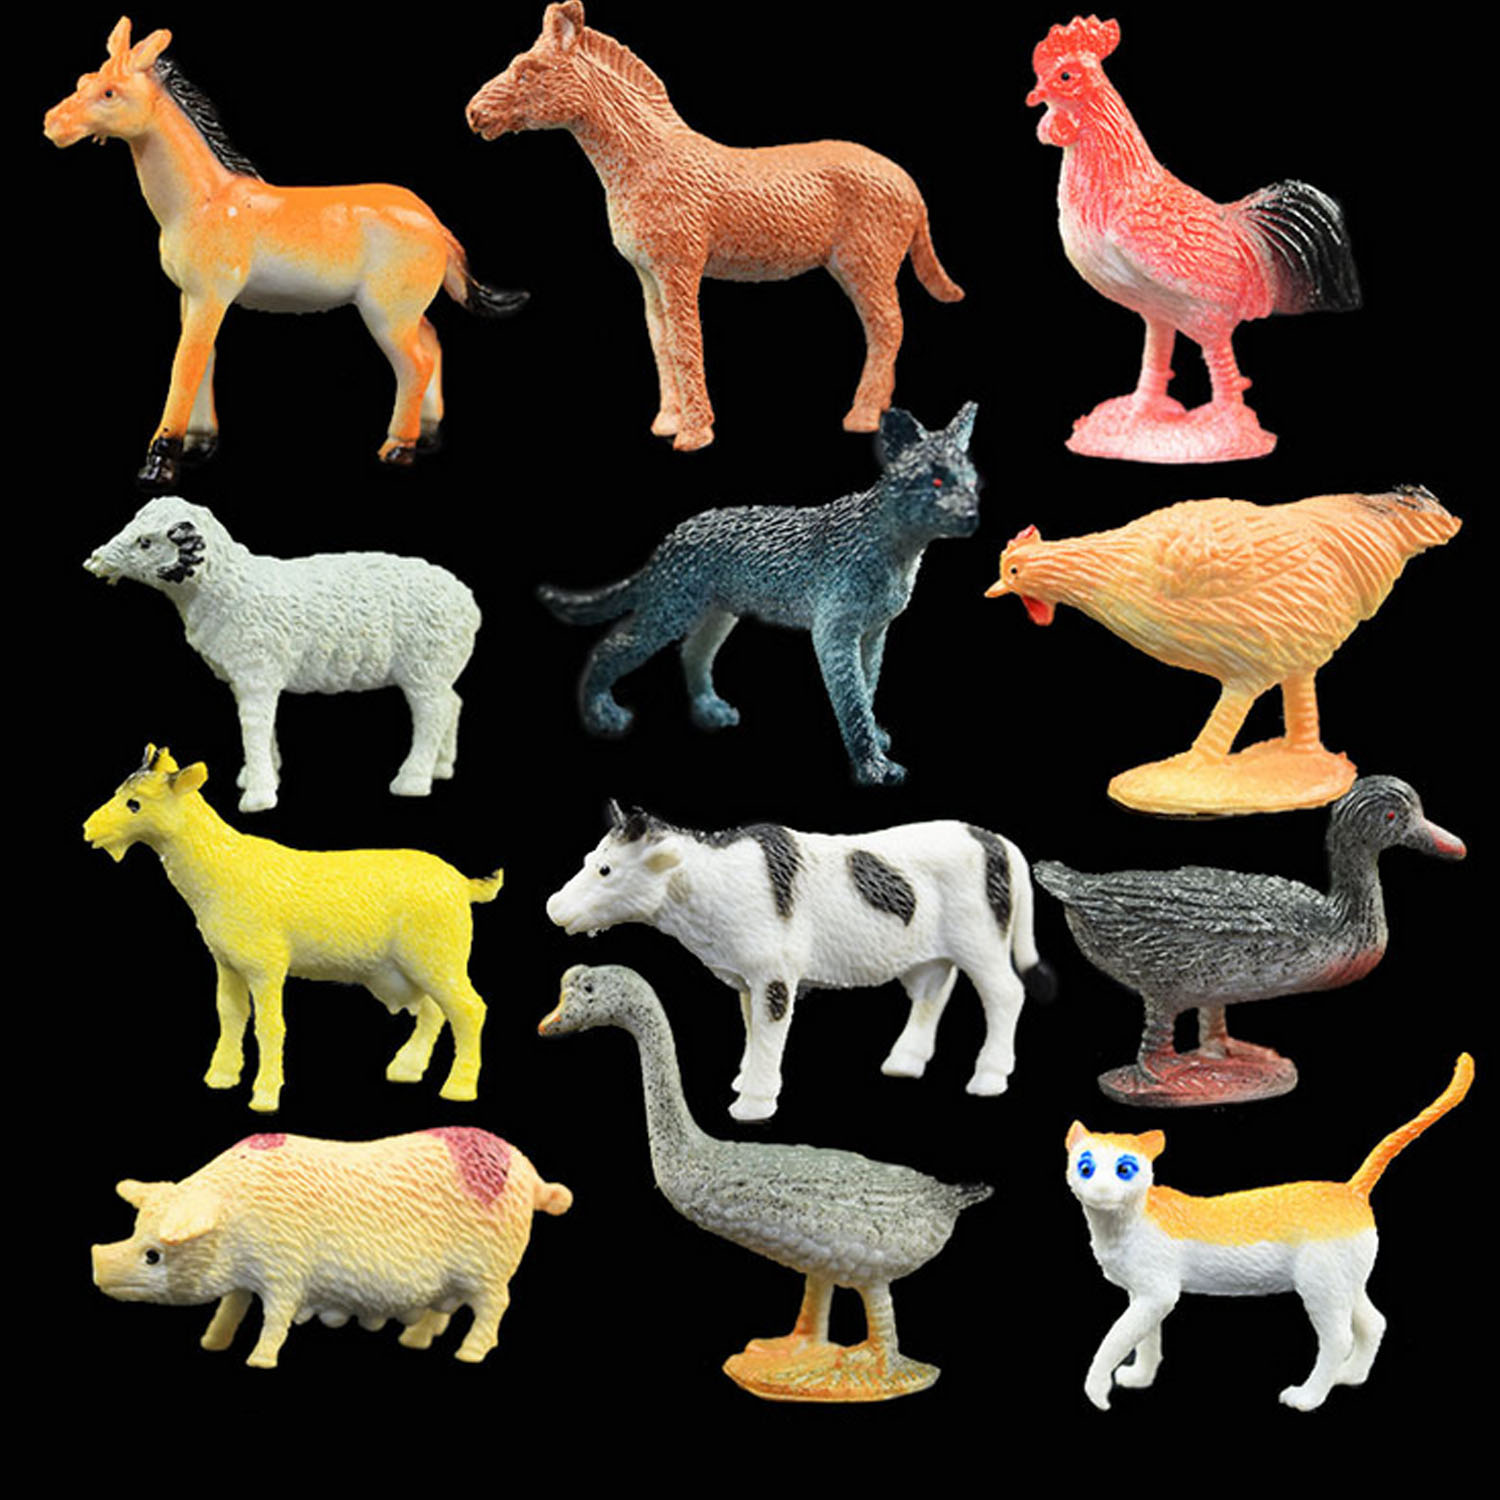 12PCS Animal Series Model Figures Mini Simulation Farm Animals Models Toys Set Animals Educational Toys For Children Favor Gifts